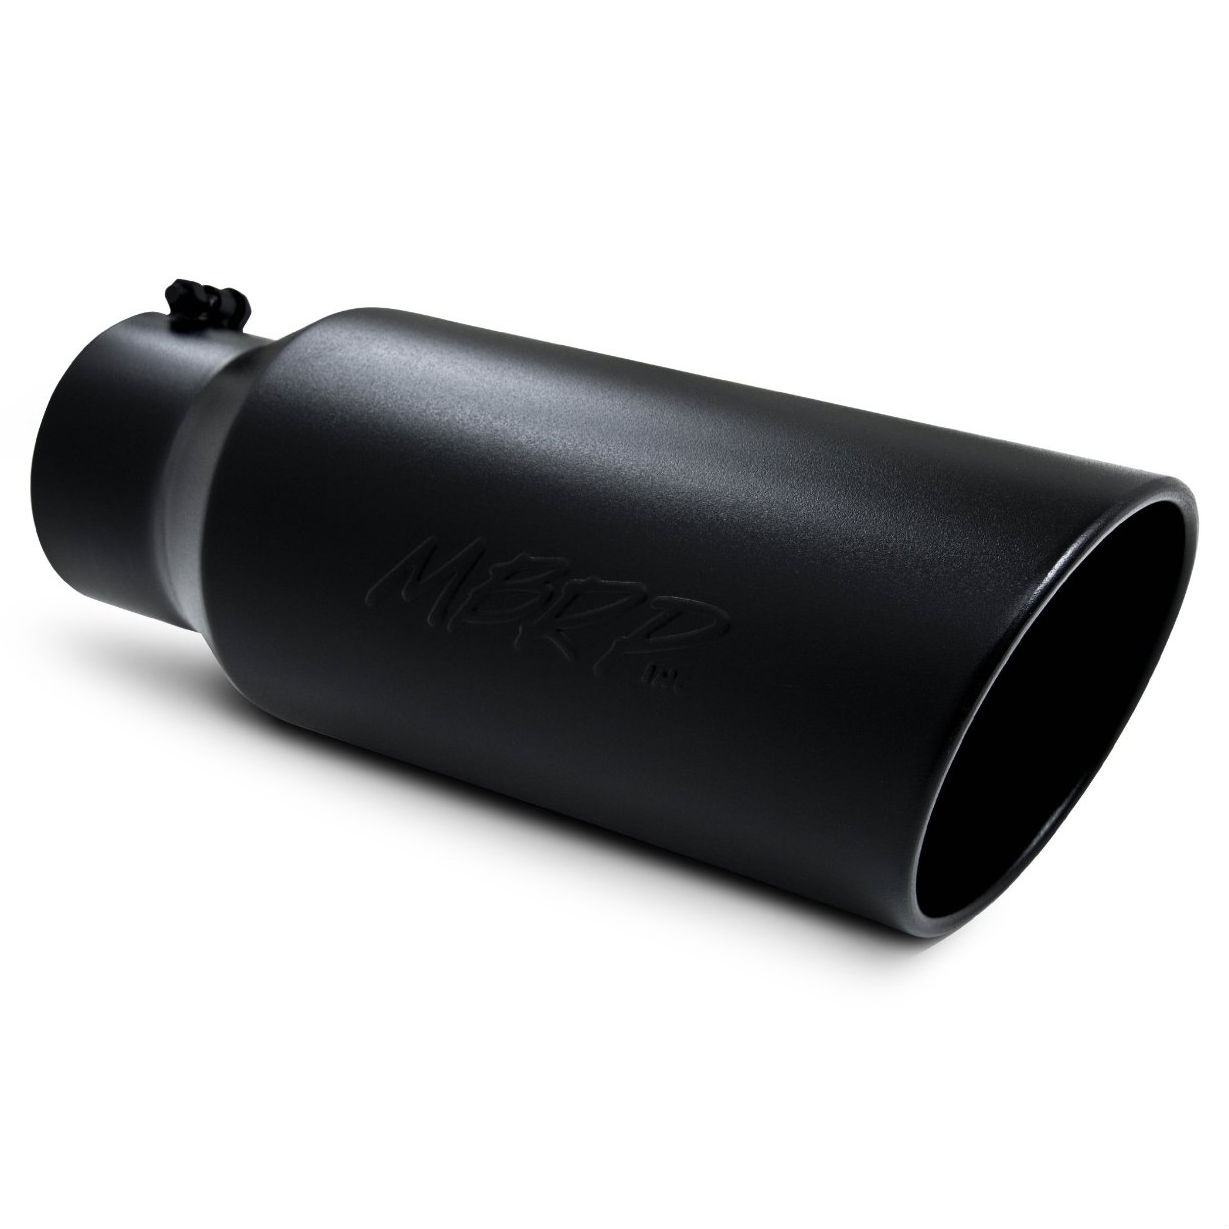 Mbrp T Blk Exhaust Tips on Cold Air Intake Systems